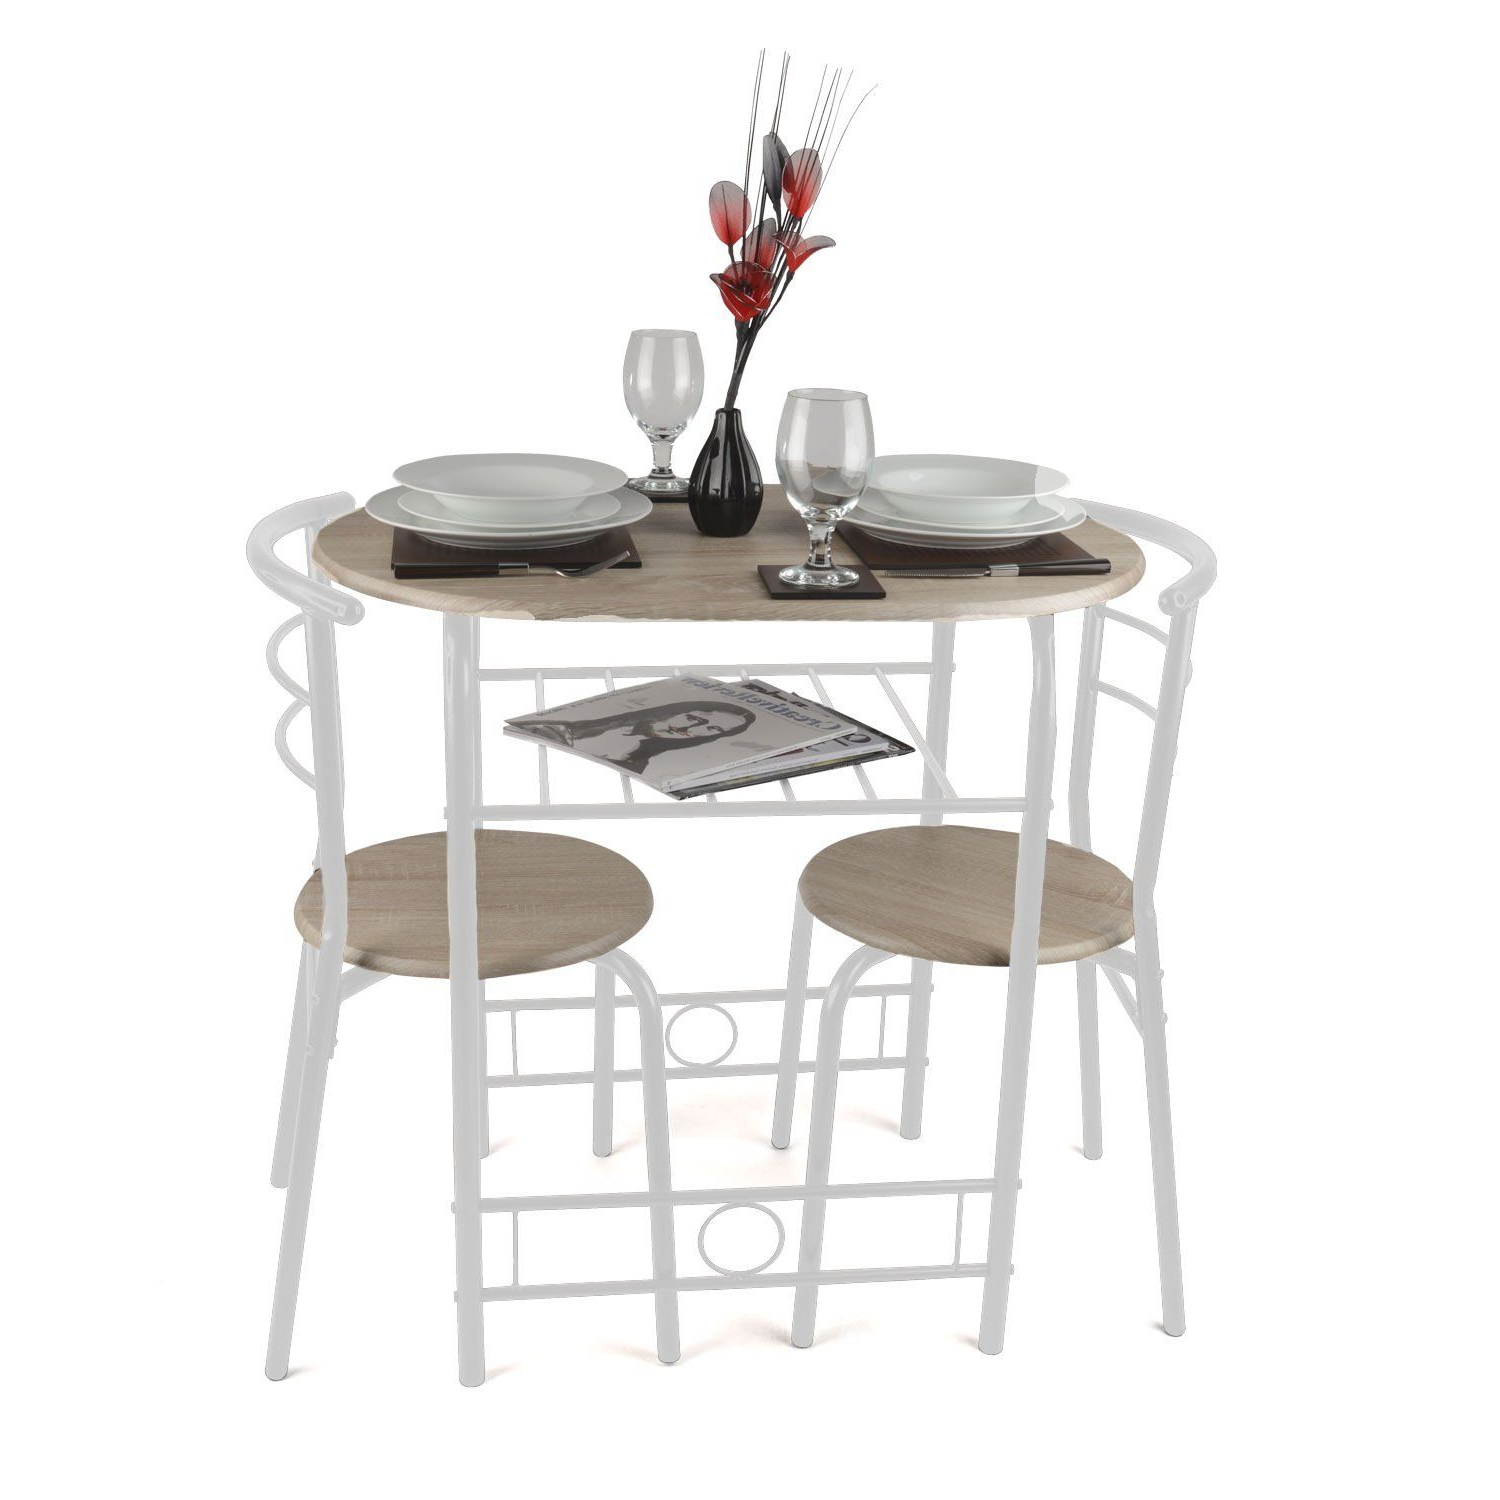 Newest Christow 3 Piece Breakfast Dining Set White: Amazon.co (View 12 of 20)